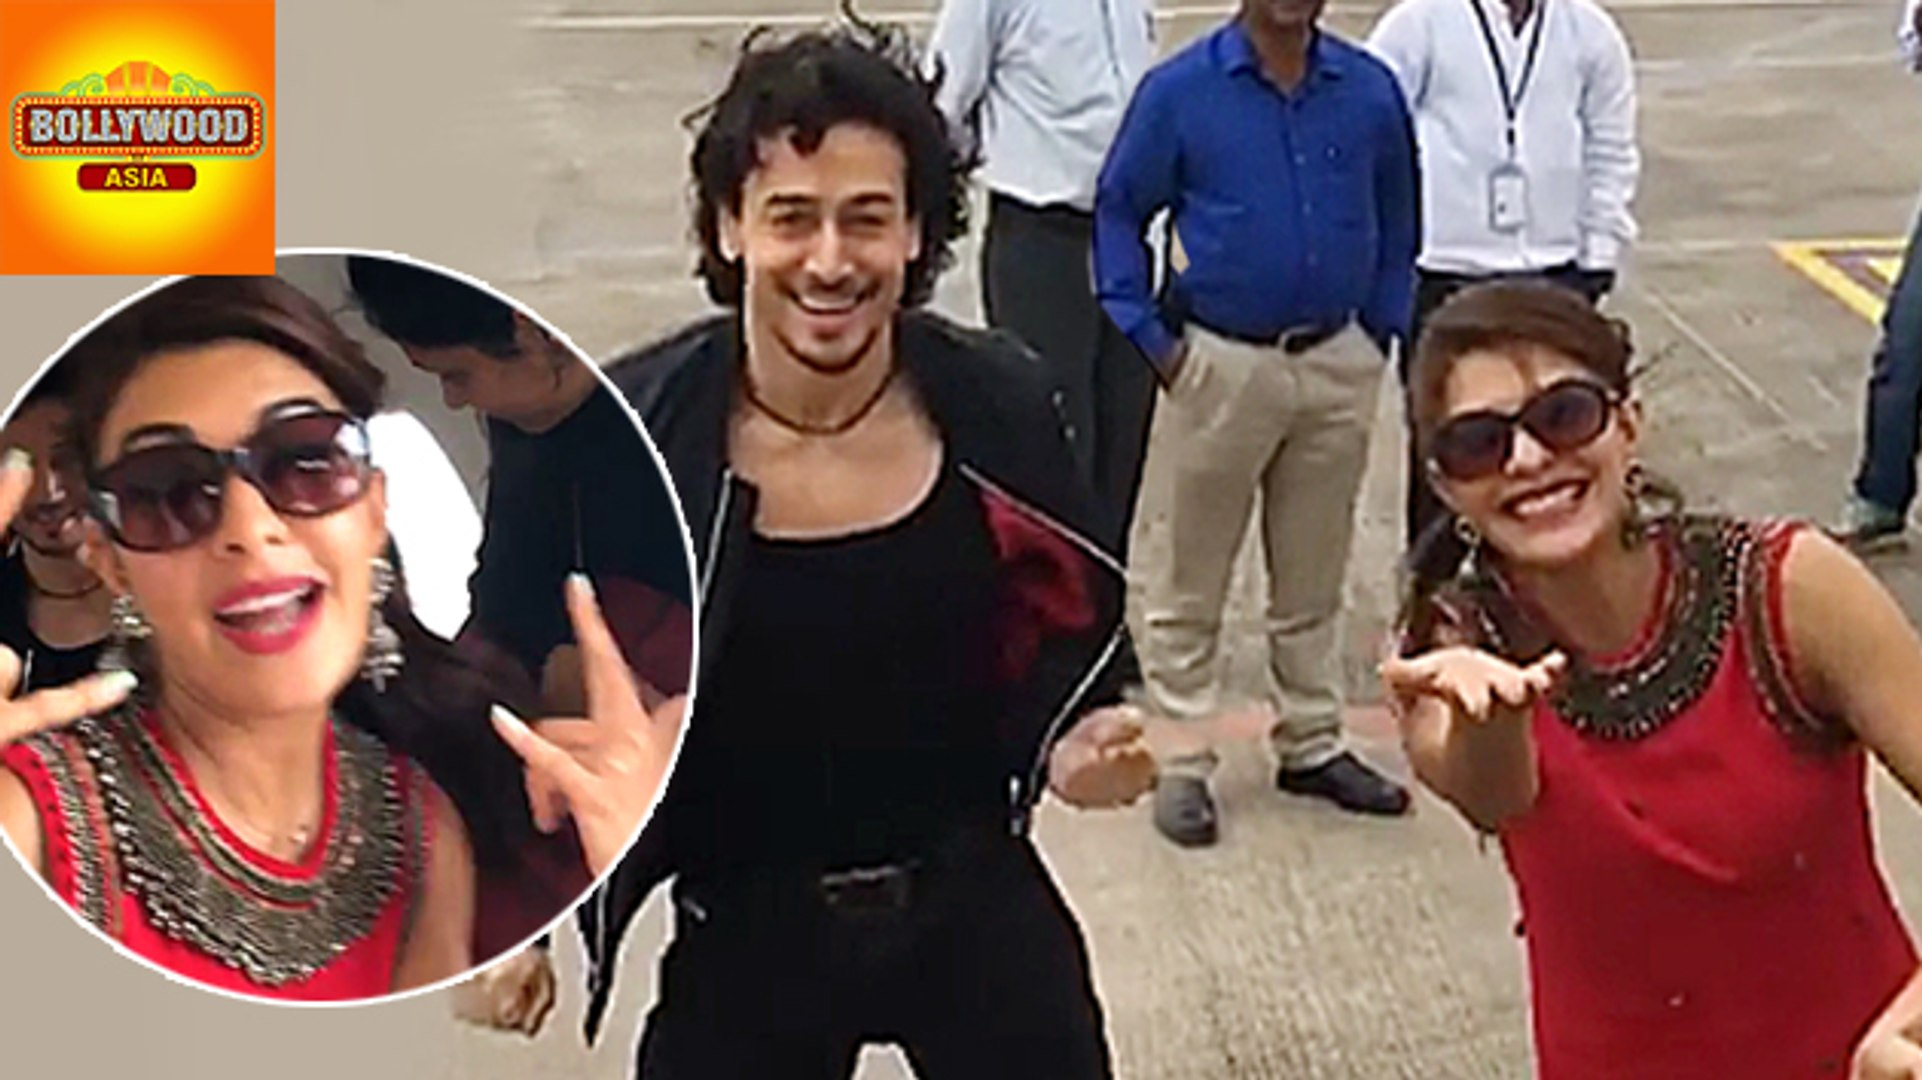 Tiger Shroff & Jacqueline Fernand FUNNY Video In-Flight | Bollywood Asia